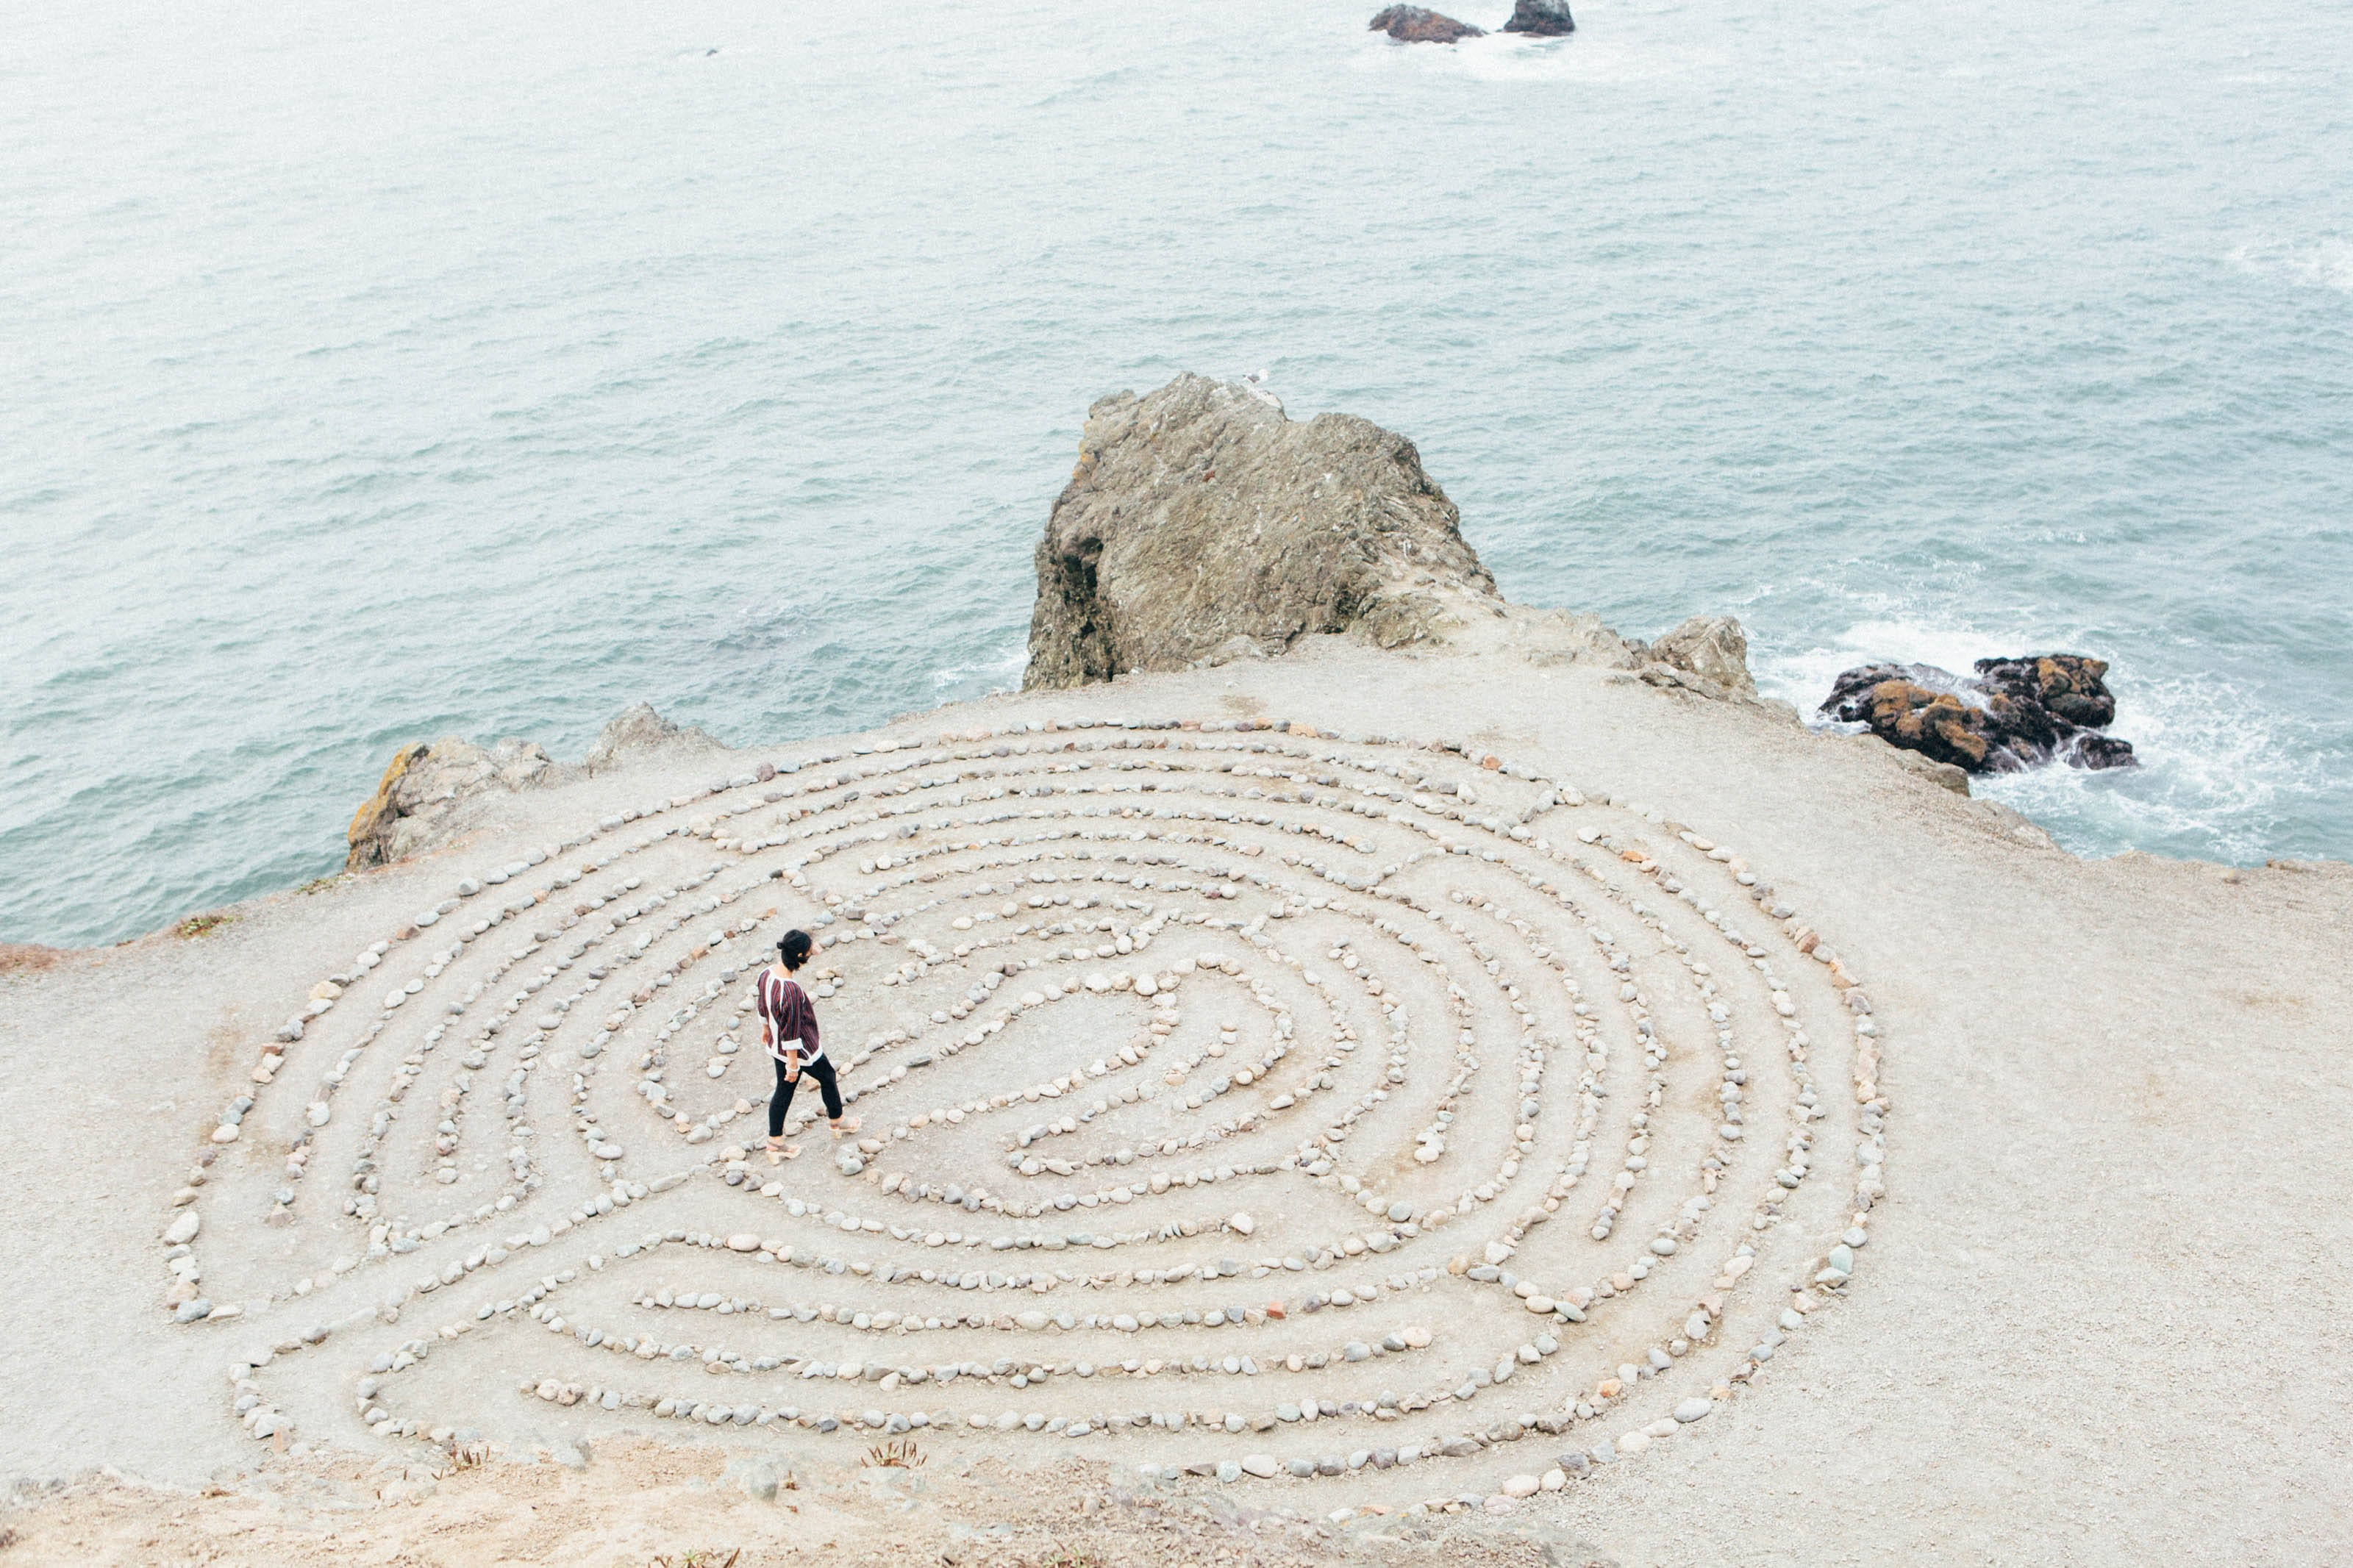 A person is walking through an elaborate labyrinth that spirals all around them; light colored sand and ocean.